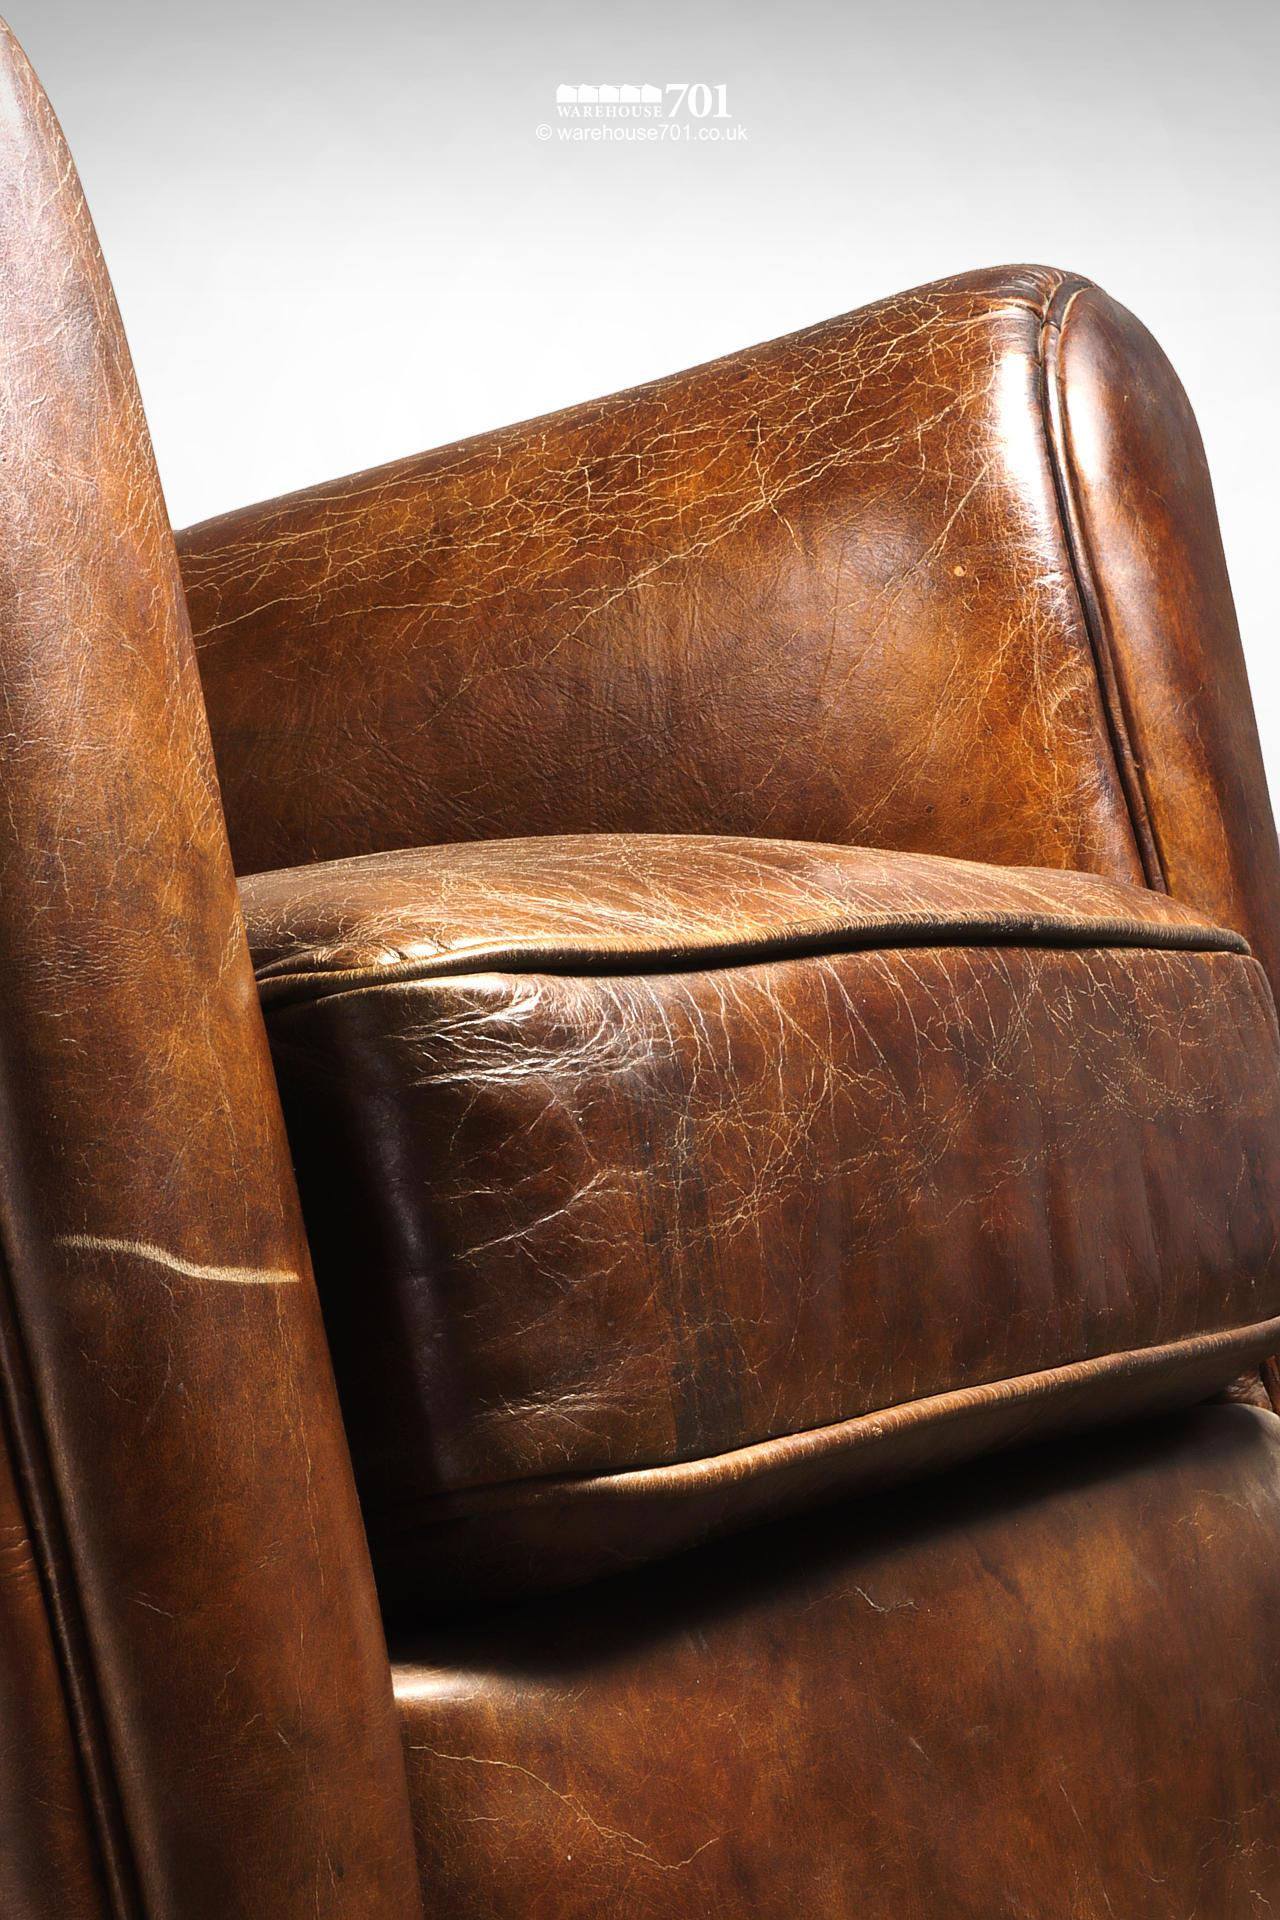 Beautifully Pre-Aged Tan Leather Armchair with Rounded Arms and Back